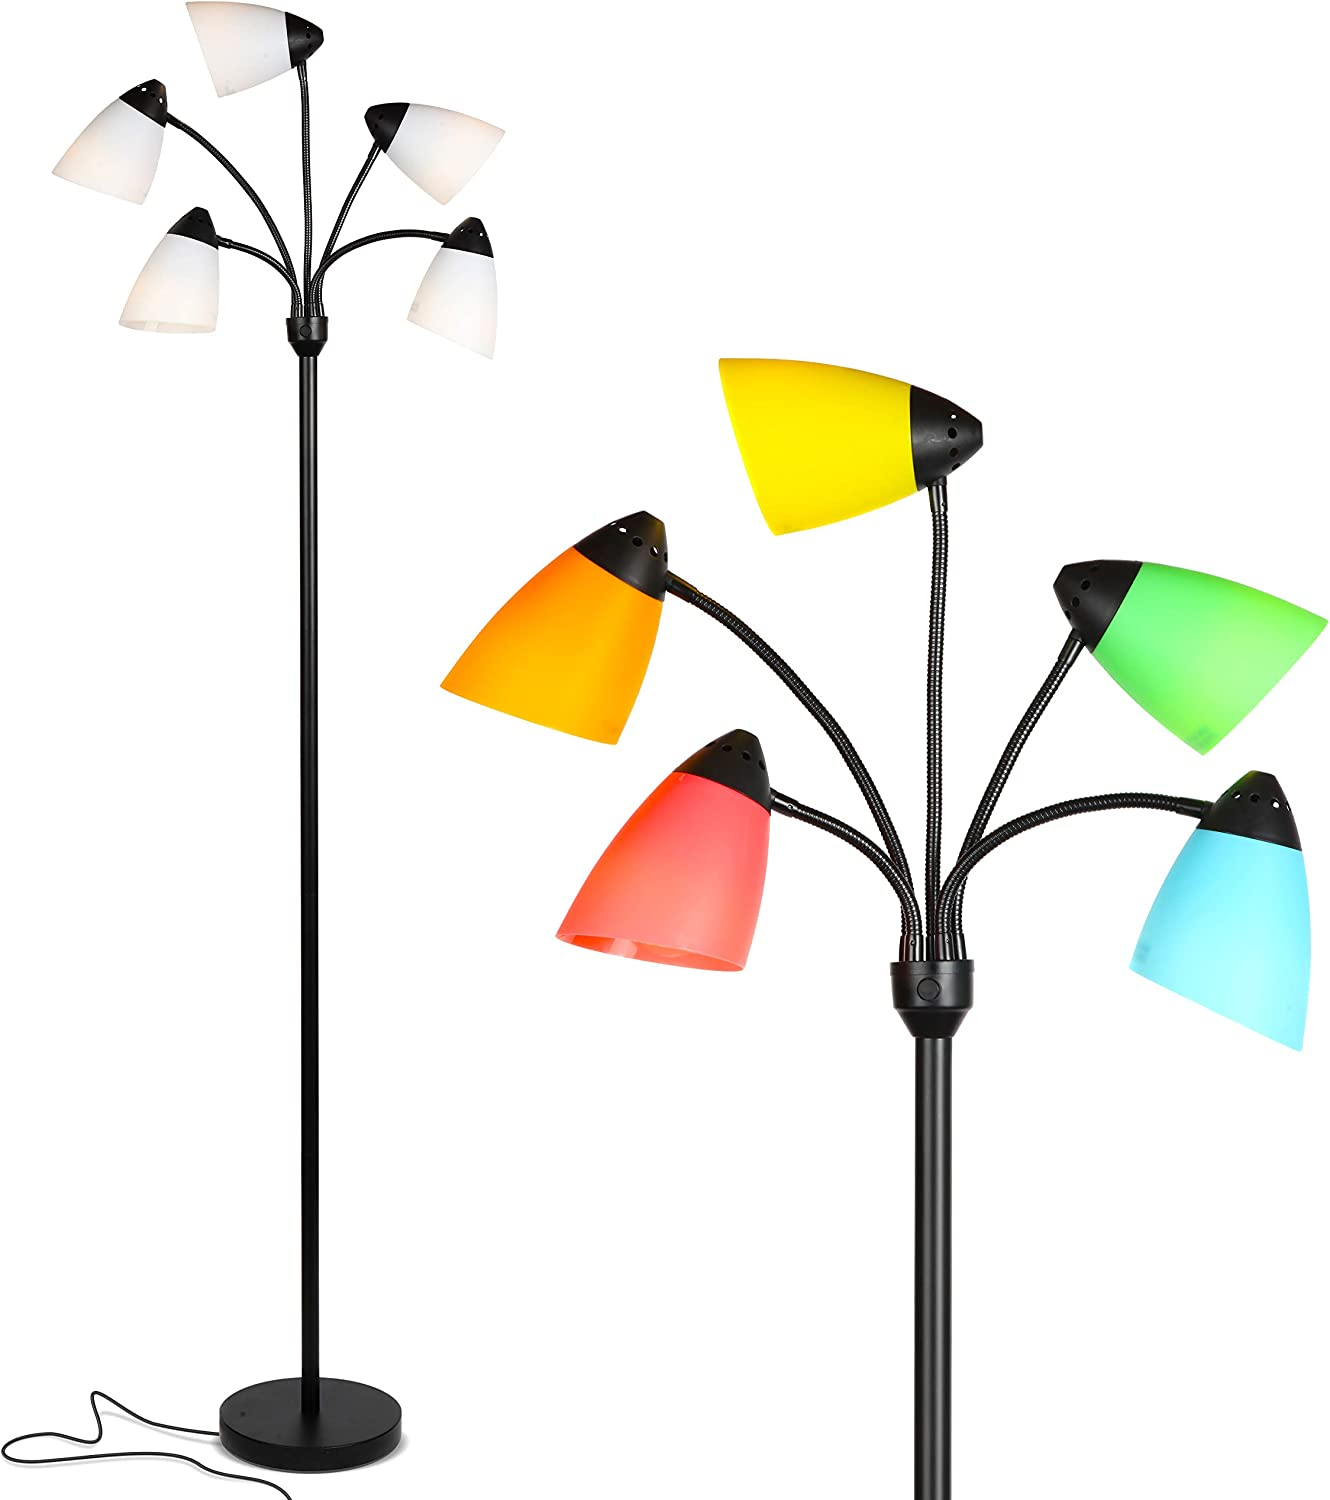 Brightech Medusa LED Floor Lamp - Multi Head Adjustable Tall Pole Standing Reading Lamp for Living Room, Bedroom, Kids Room - Includes 5 LED Bulbs and 5 White & Colored Interchangeable Shades – Black